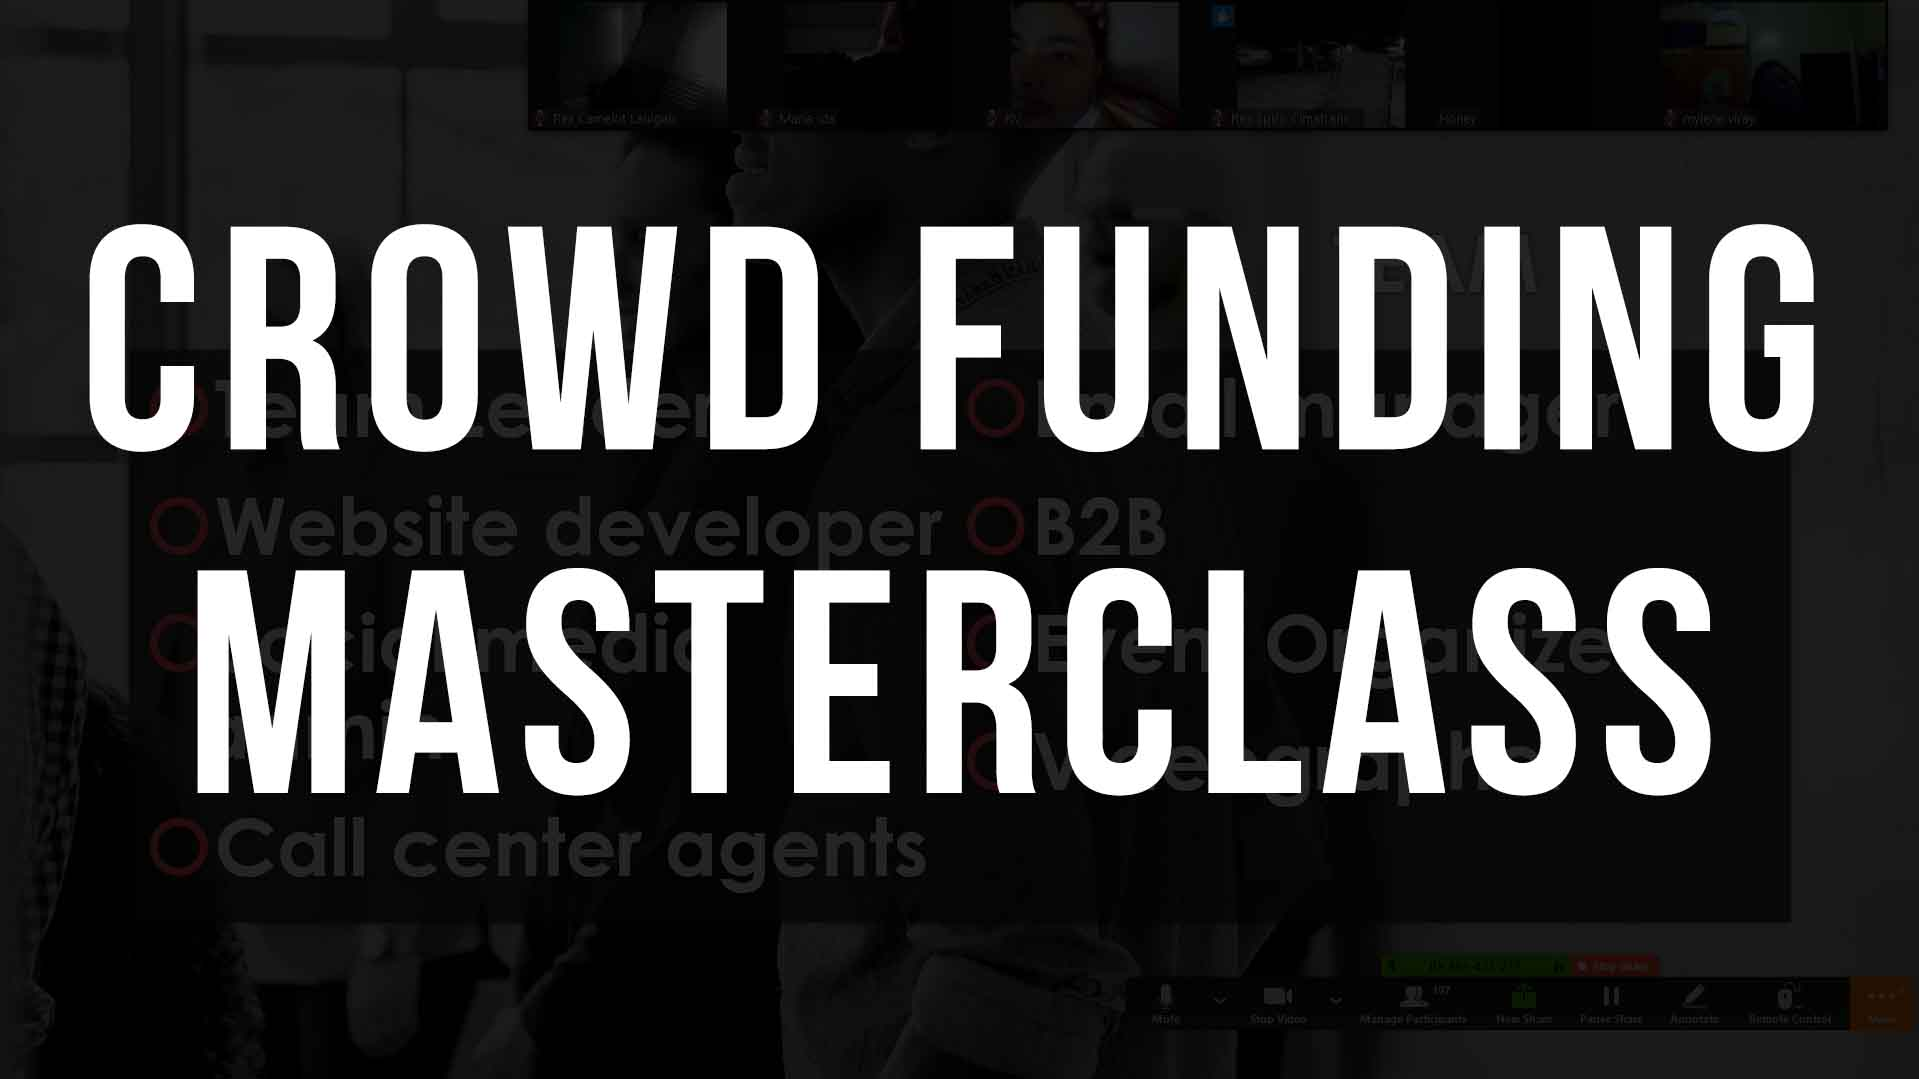 CROWD FUNDING MASTERCLASS